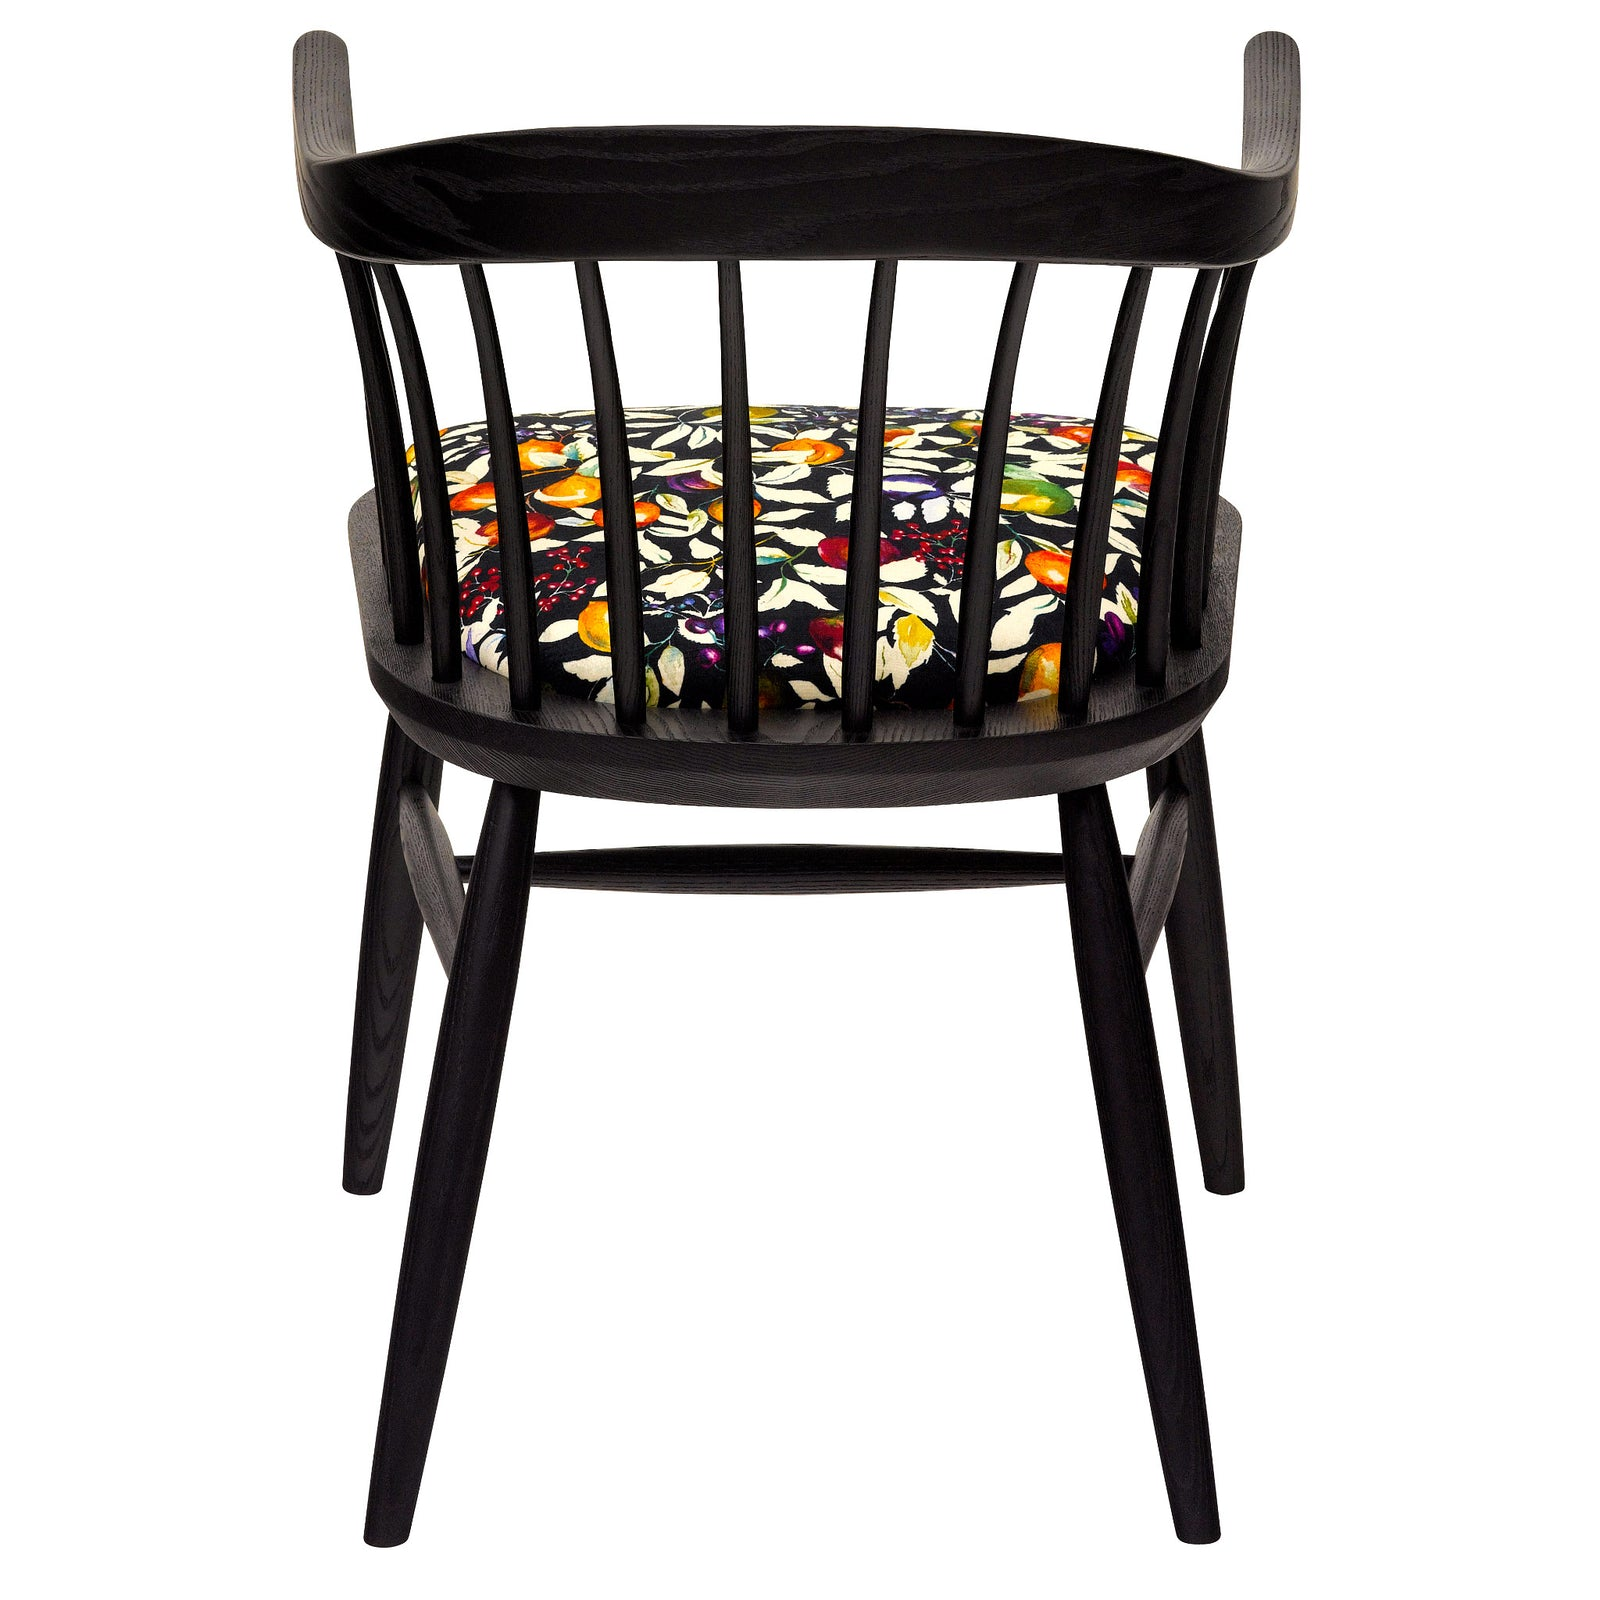 The Darwin Armchair Upholstered in Liberty London Fruit Billett Vintage Velvet with A Black Finish